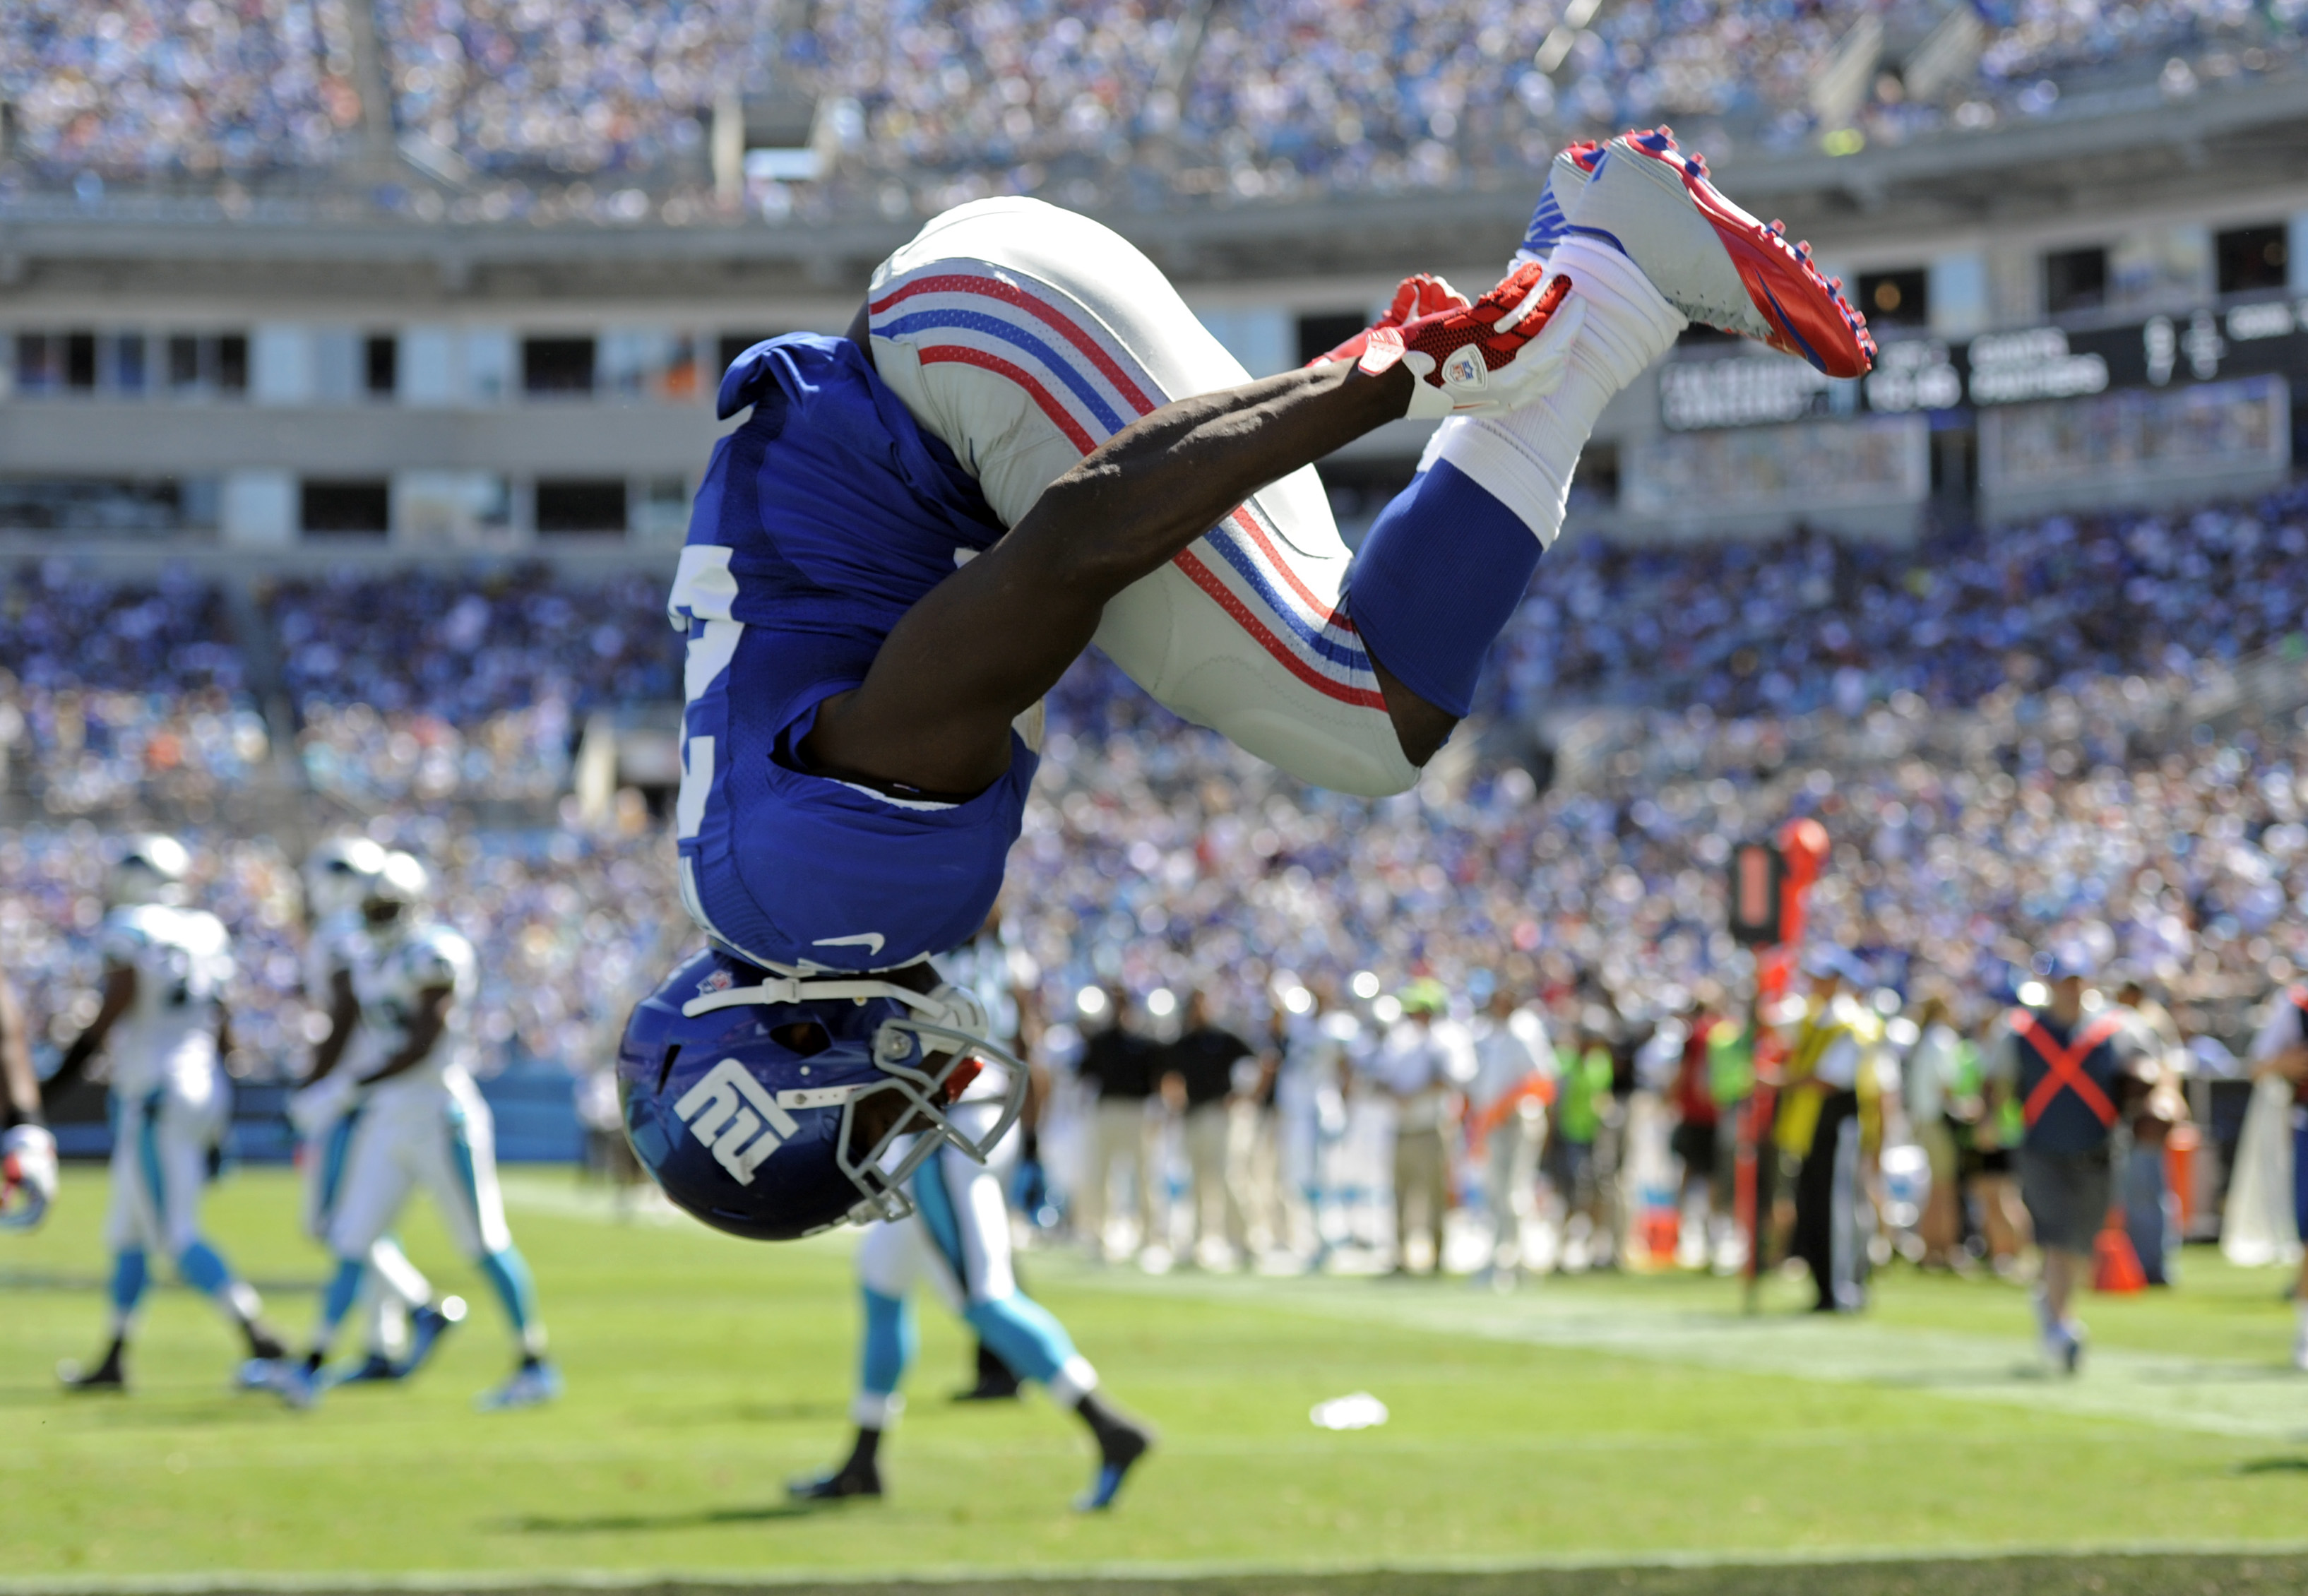 FILE - In this Sept. 22, 2013, file photo, New York Giants' David Wilson does a flip after thinking he had scored a touchdown against the Carolina Panthers during the first half of an NFL football game in Charlotte, N.C. The run was called back for a pena